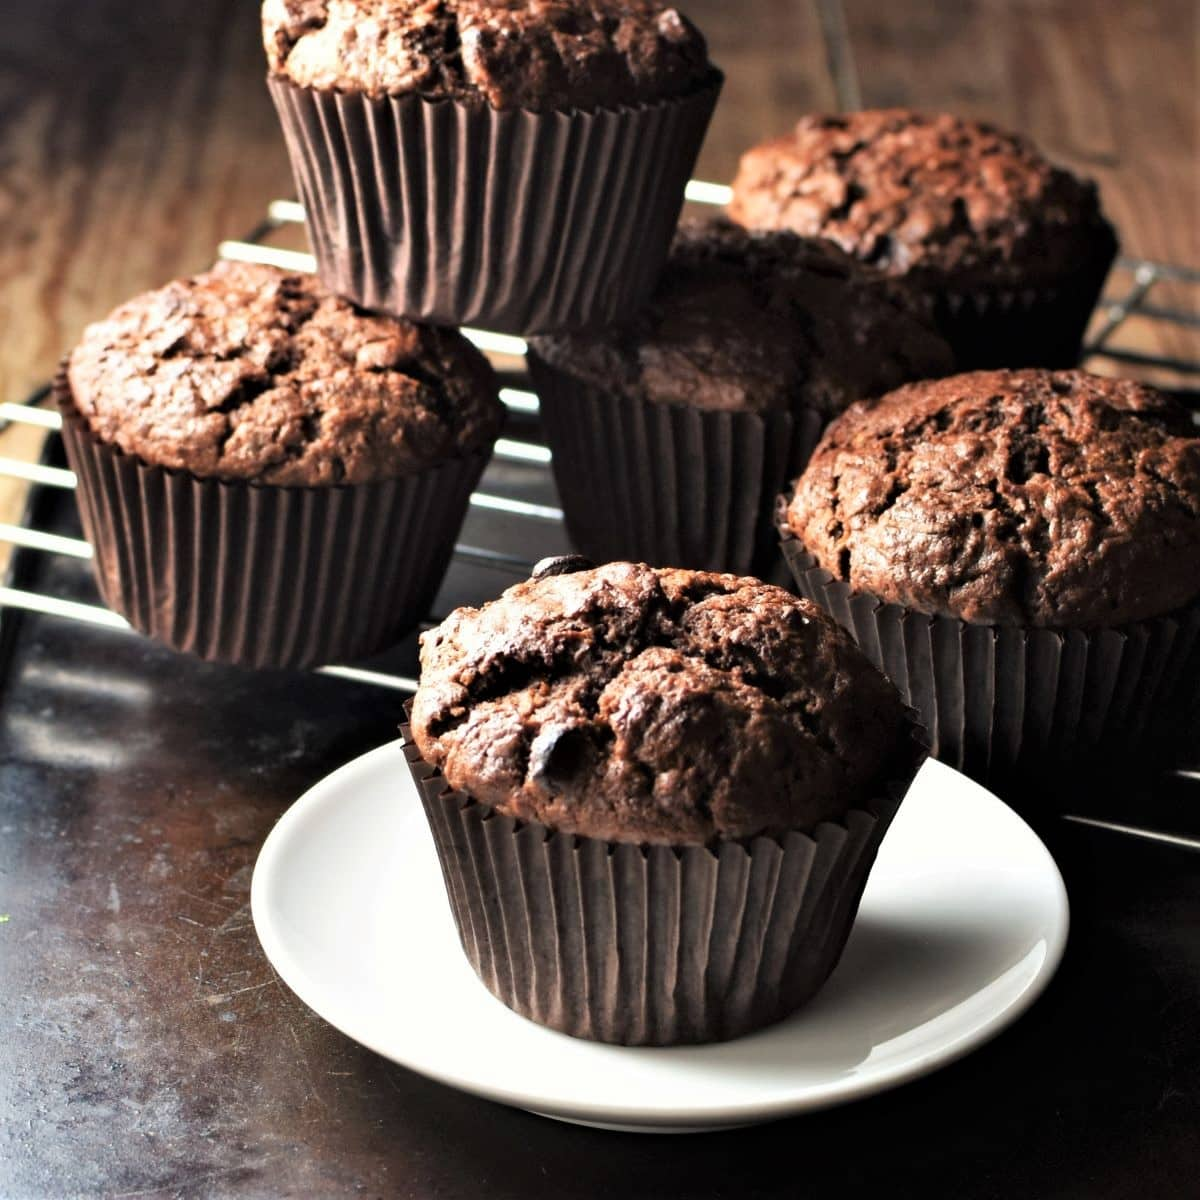 Side view of chocolate sweet potato muffins on plate and rack.